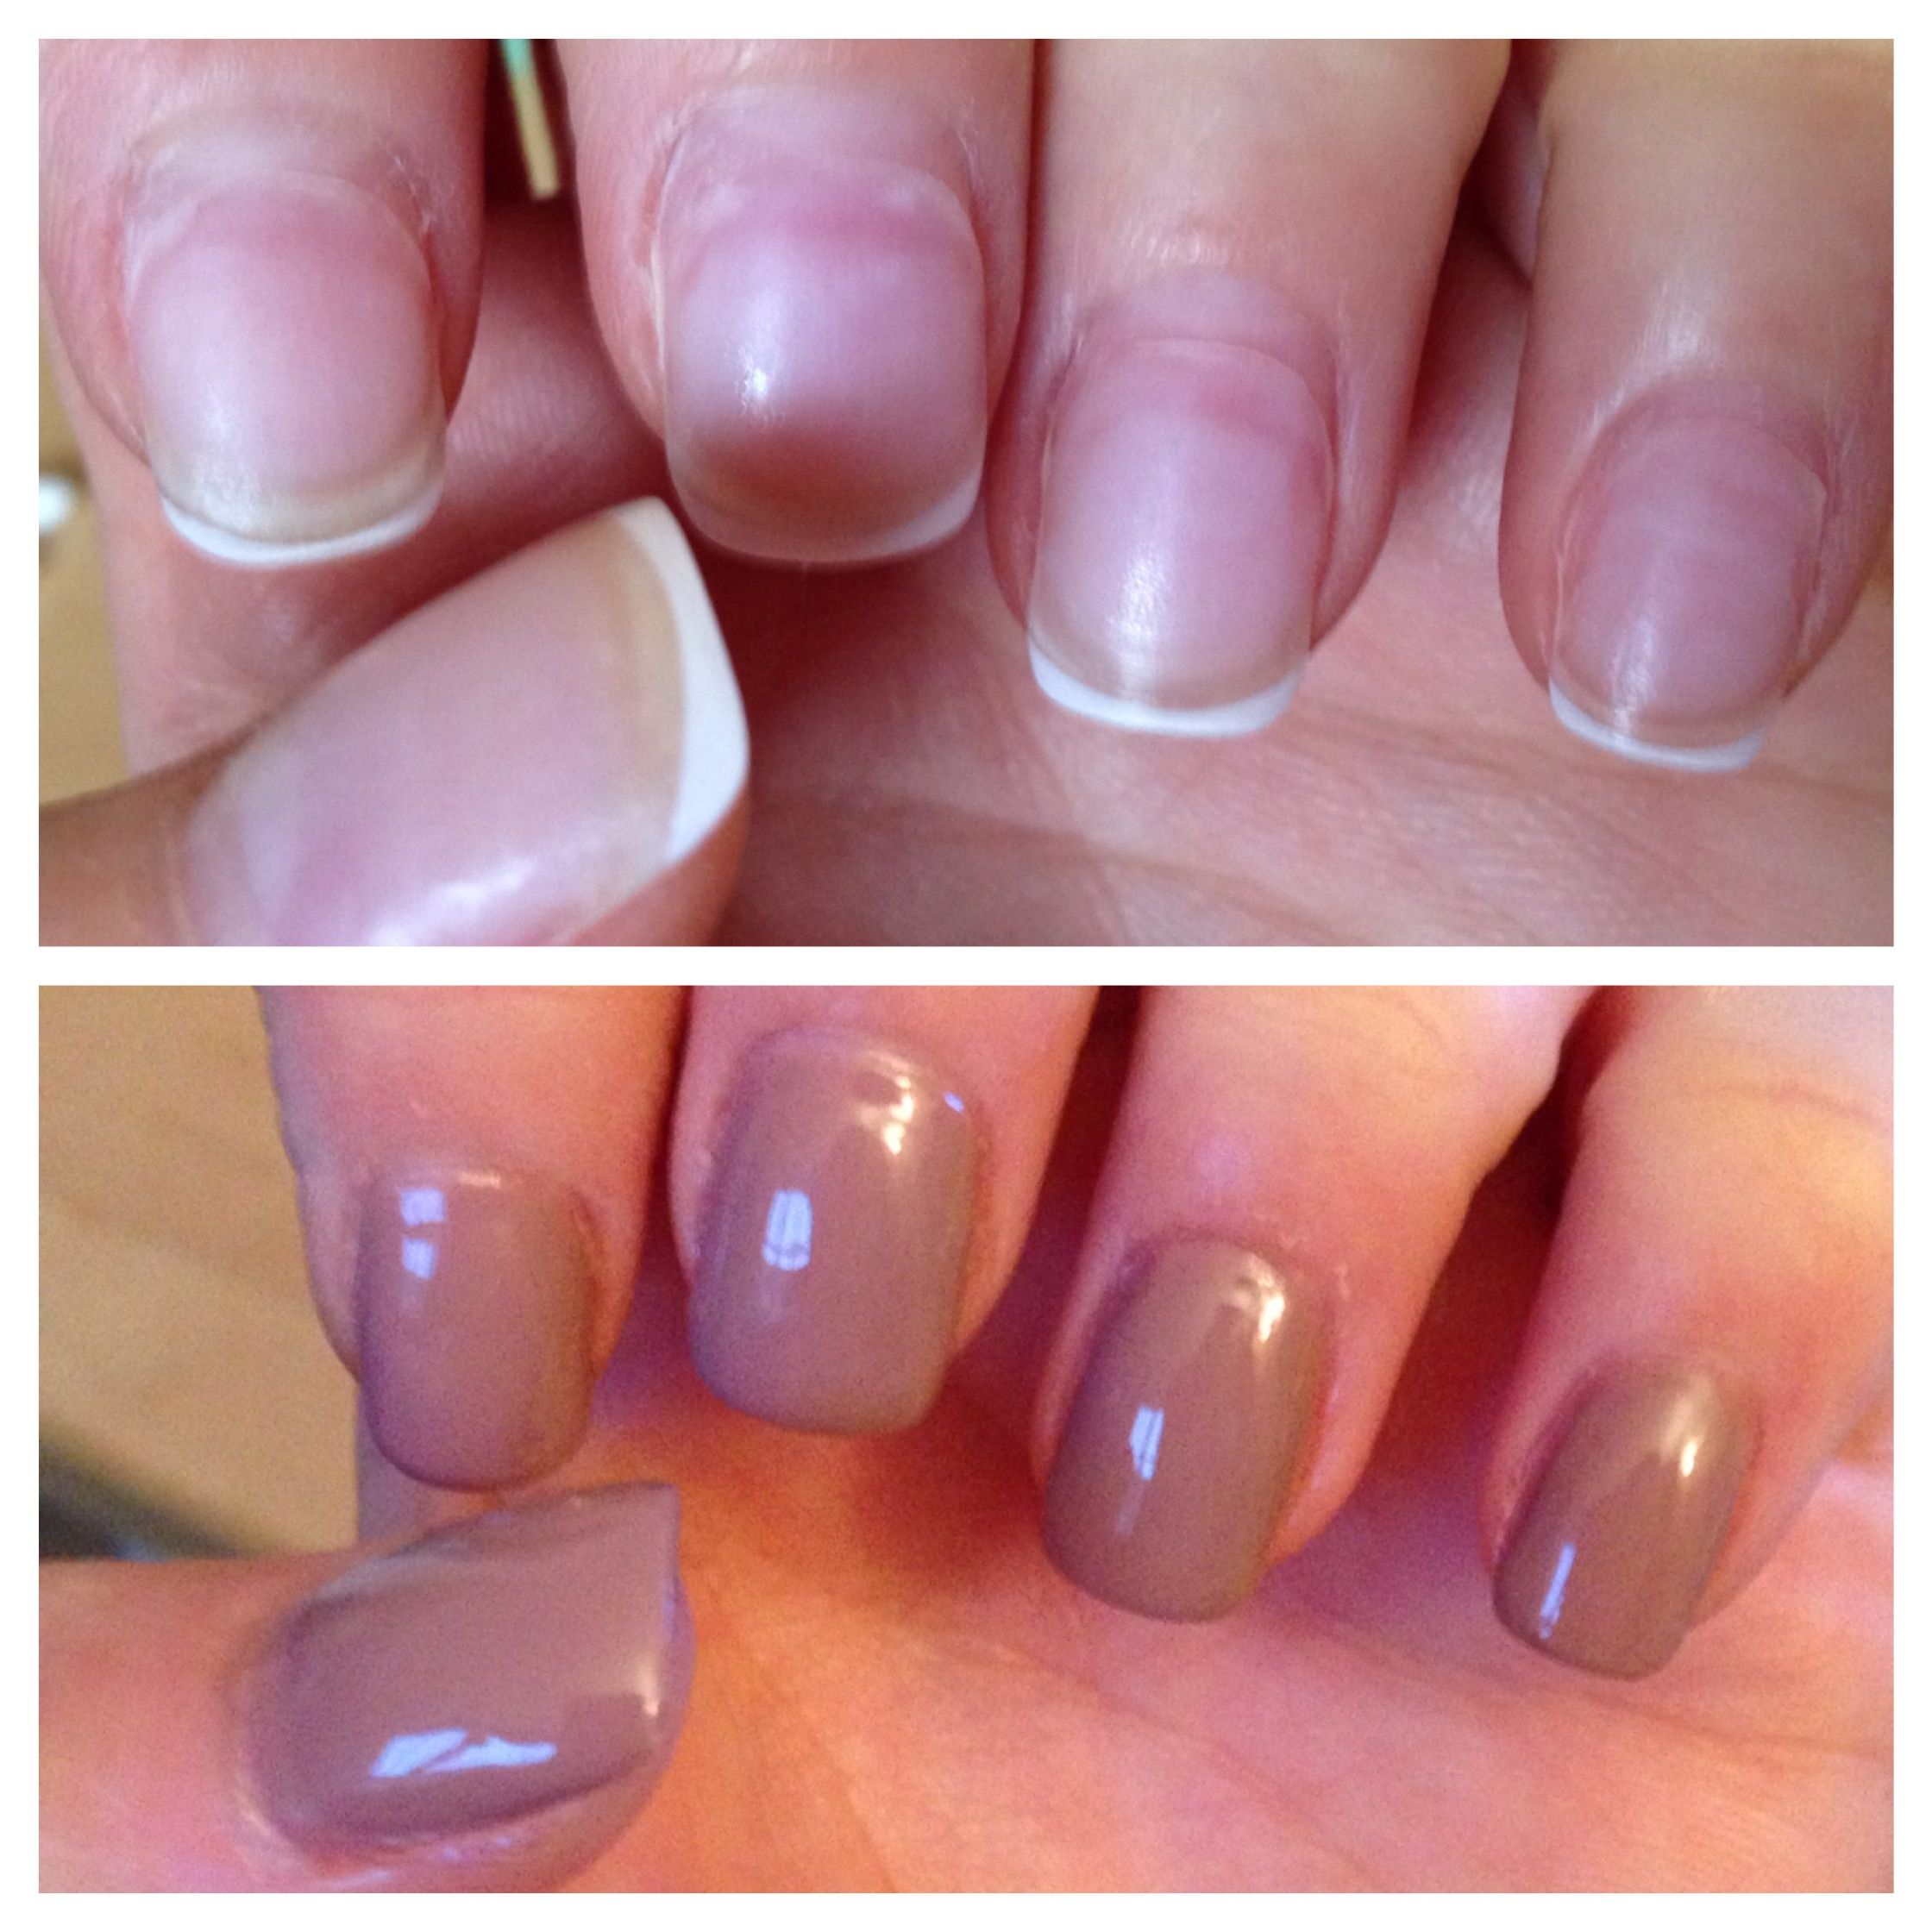 Grown Out Acrylic Nails To Diy Mani Before And After Nails Acrylic Nails Hair And Nails